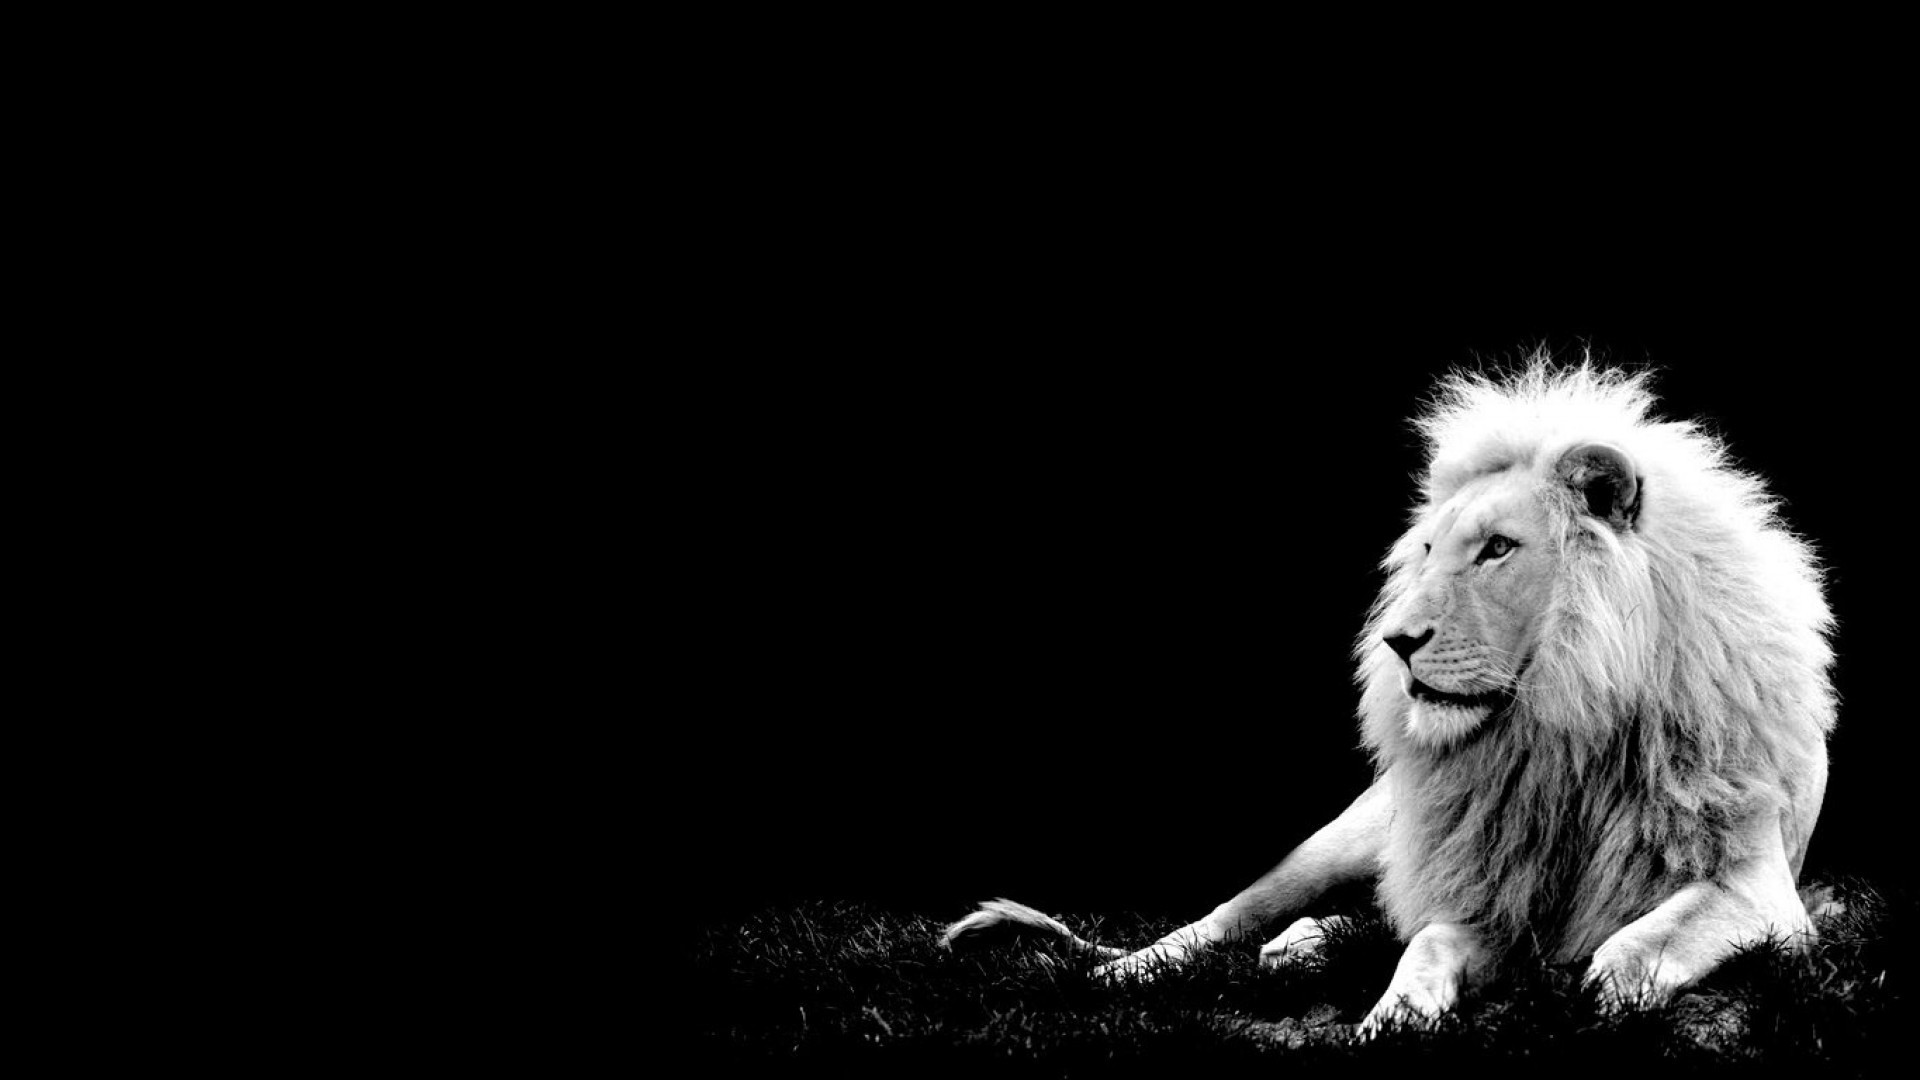 Chronicles Of Narnia Desktop Wallpaper - White Lion With Black Background , HD Wallpaper & Backgrounds